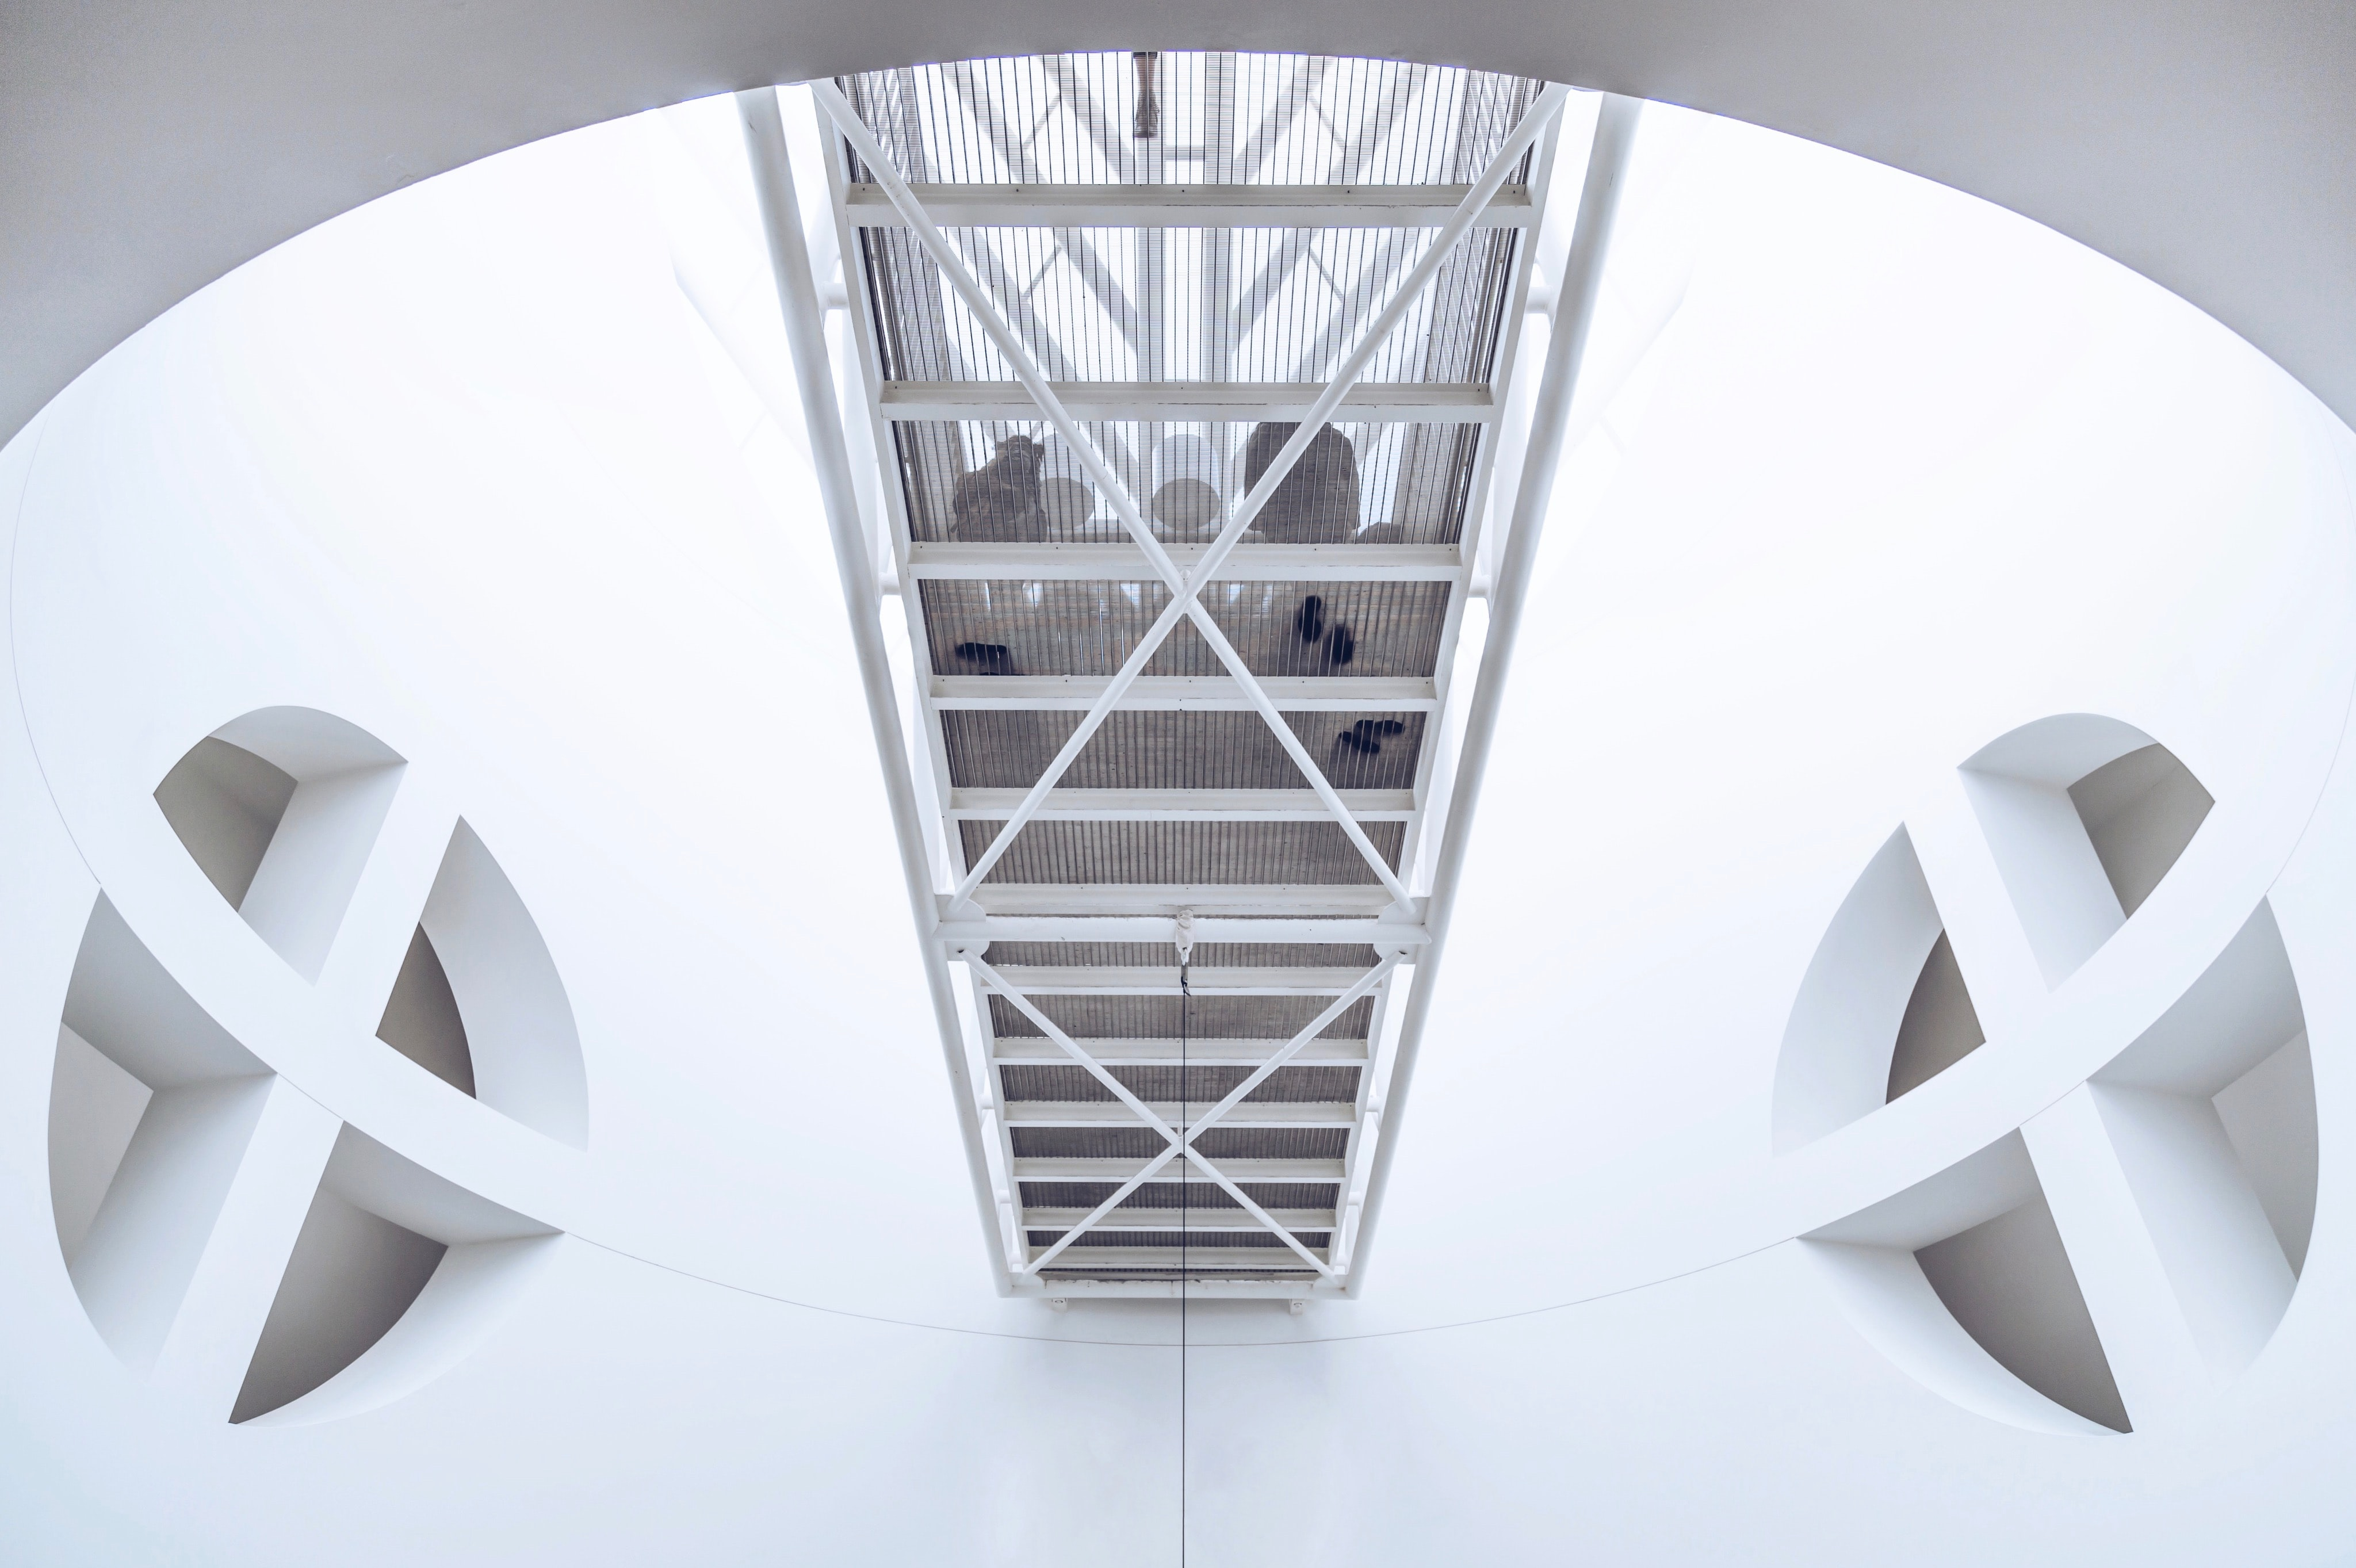 Interior of San Francisco Museum of Modern Art architecture in circular white room with walkway